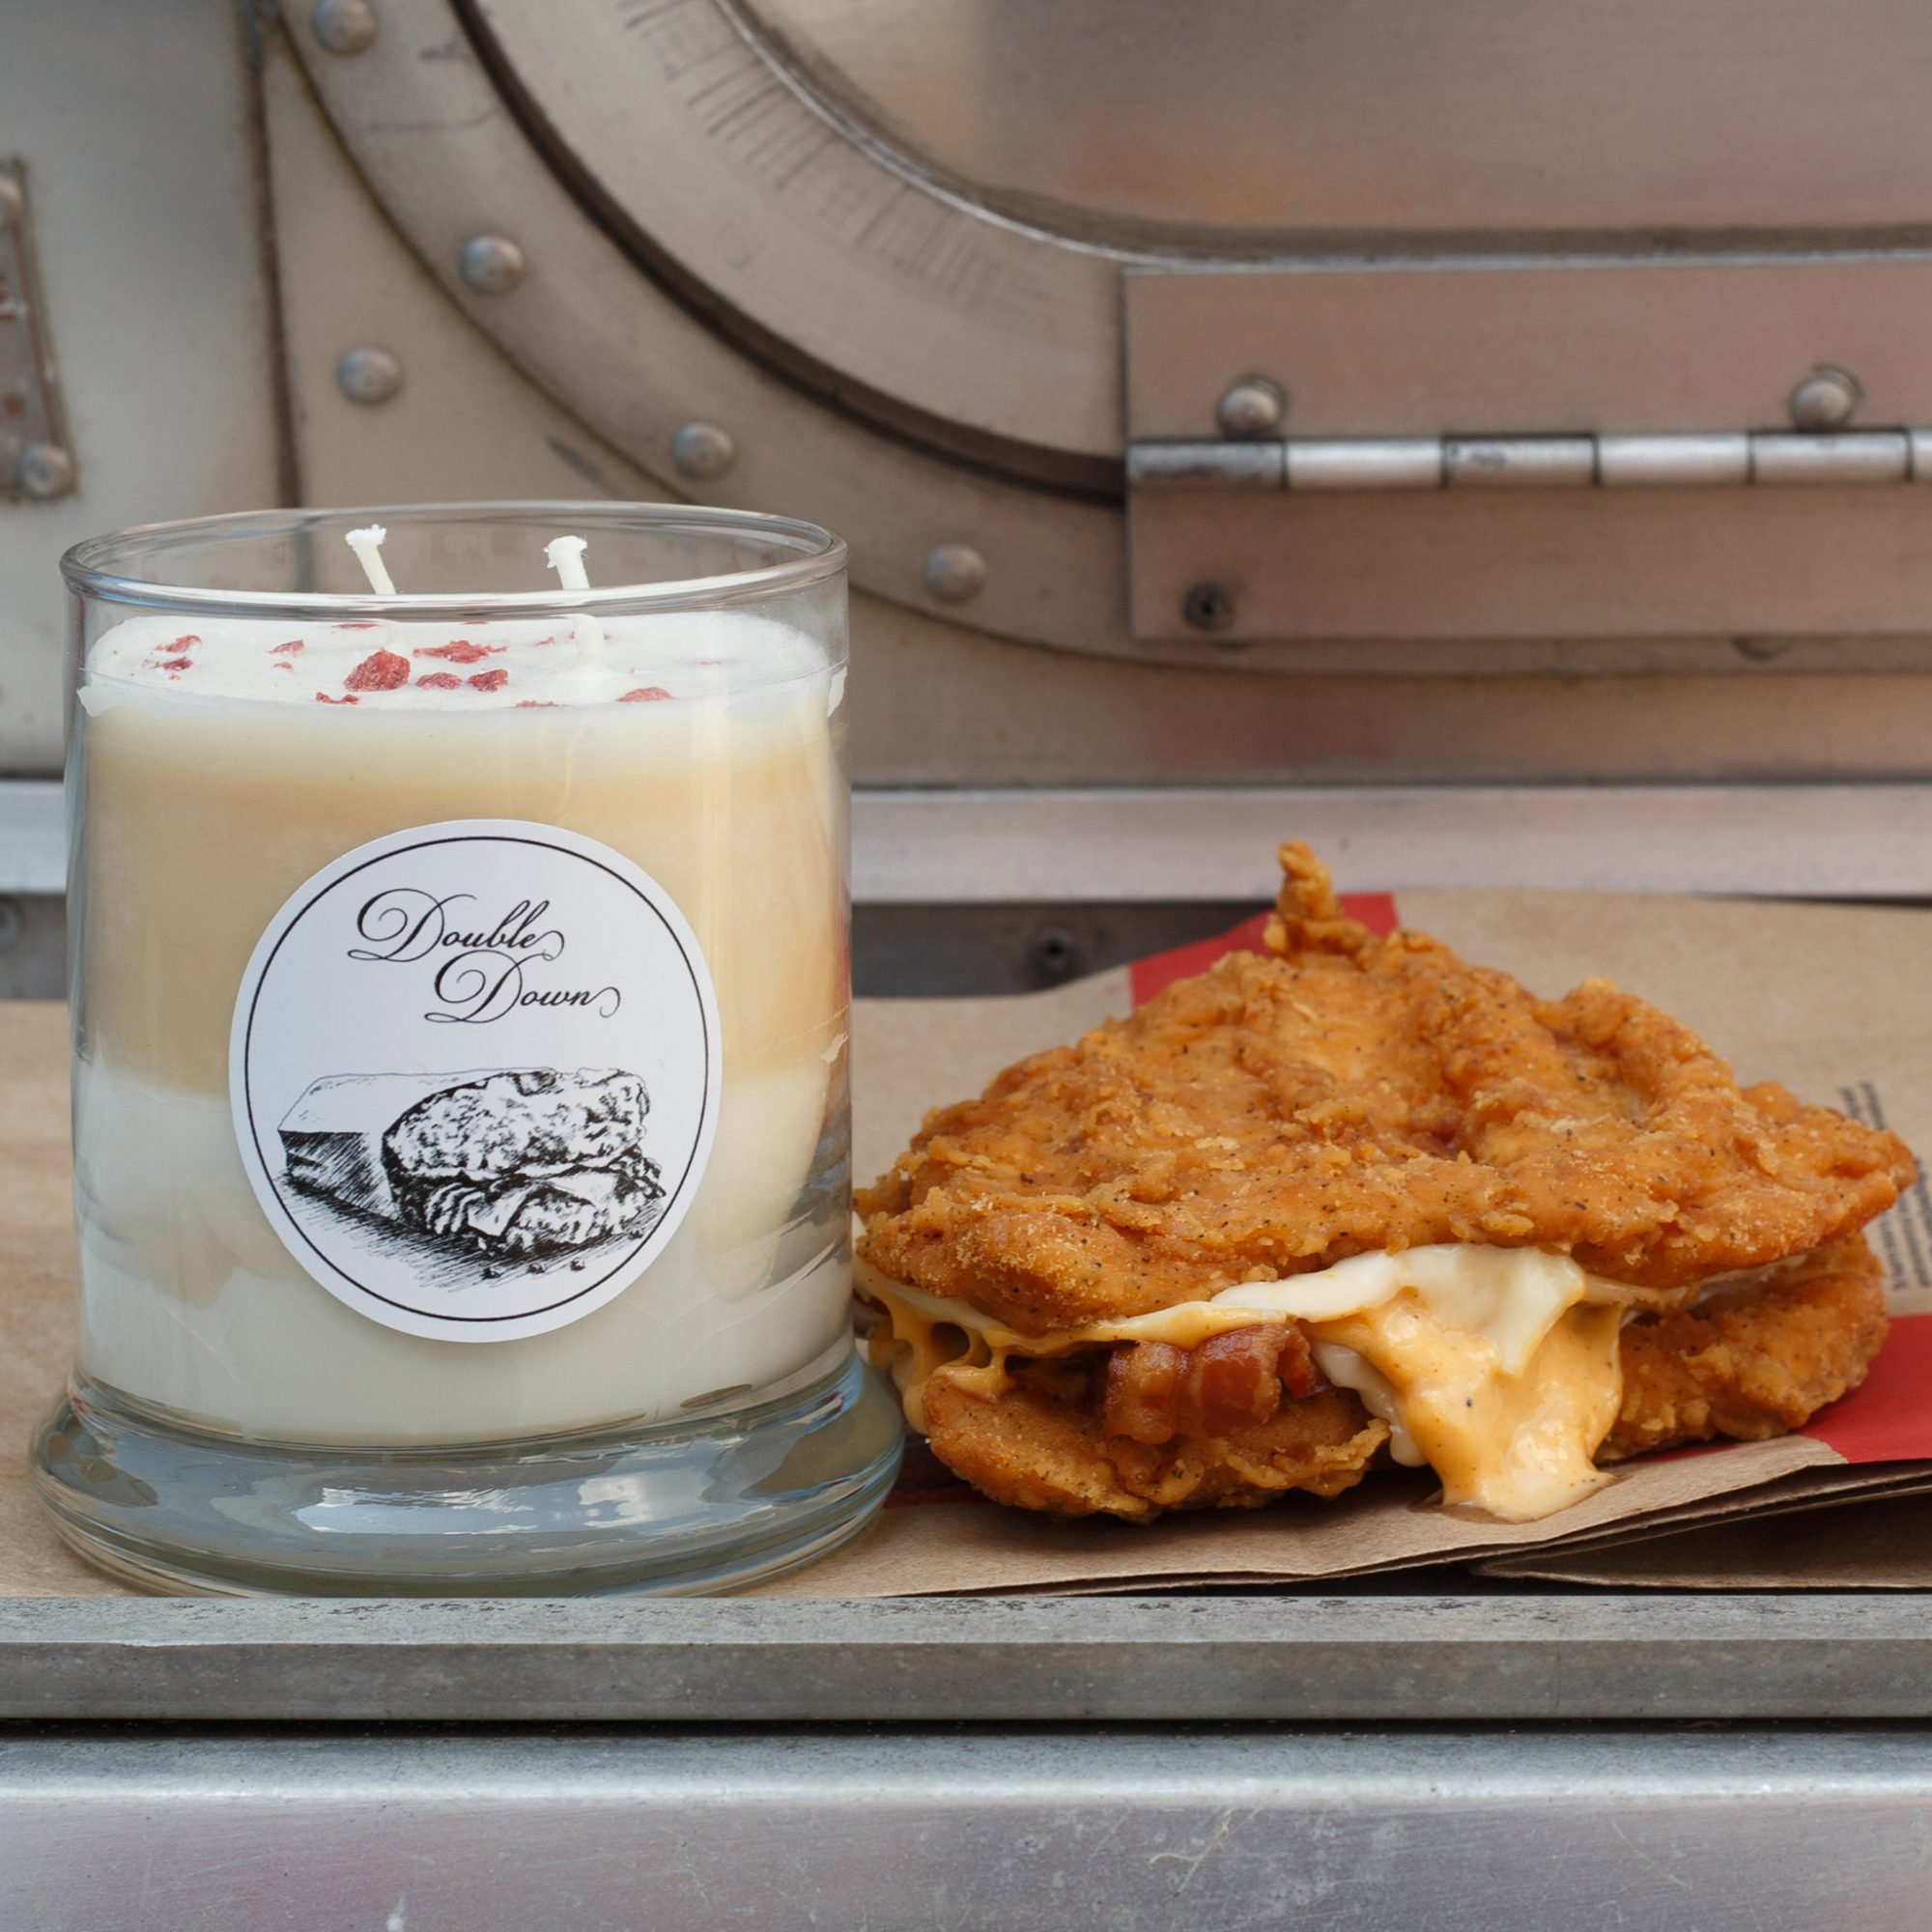 FWX KITCHEN TRASH DOUBLE DOWN CANDLE